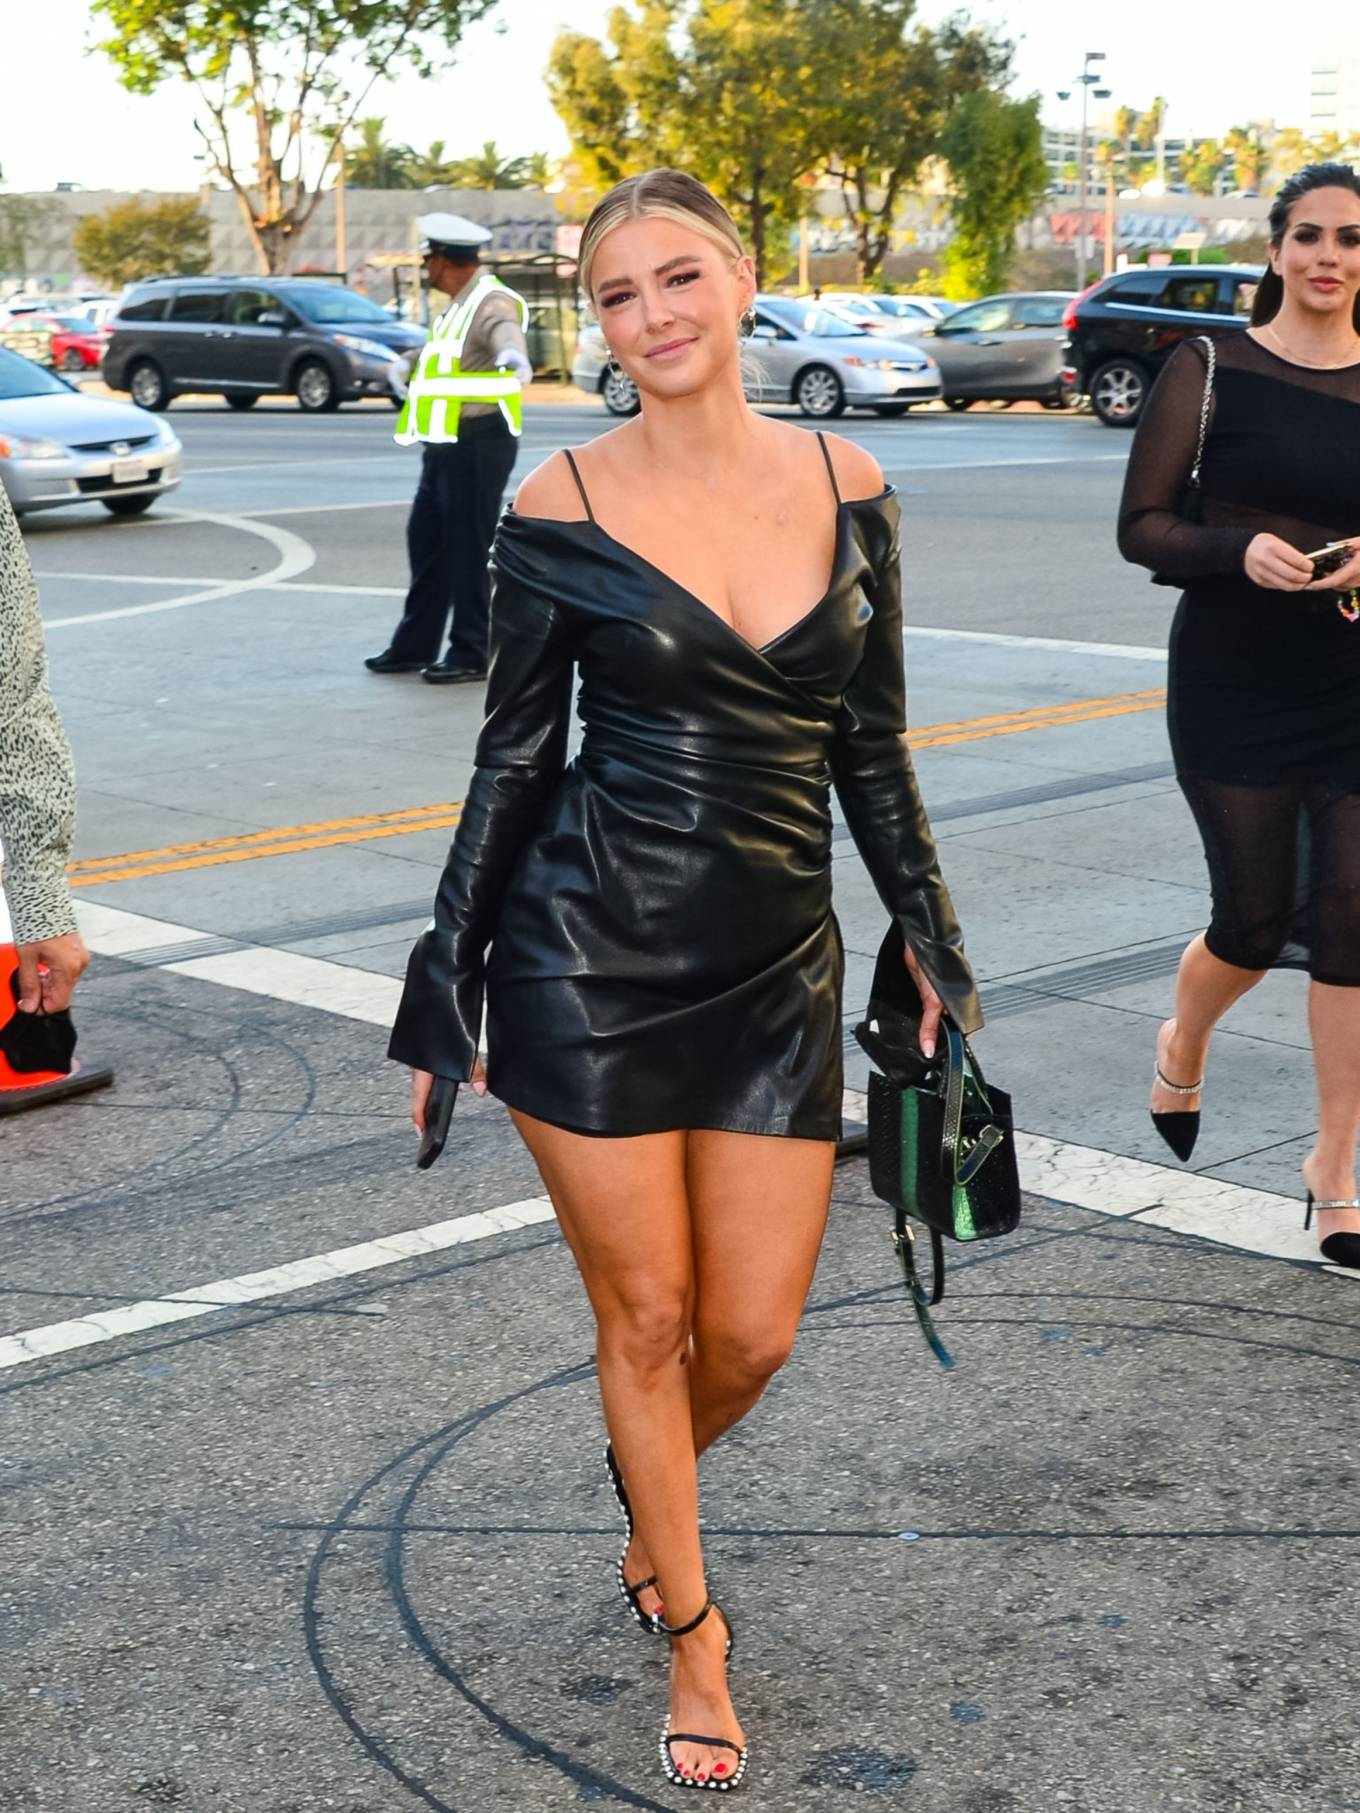 Ariana Madix 2021 : Ariana Madix – With Tom Sandoval seen arriving at the Midnight In The Switchgrass in Los Angeles-21